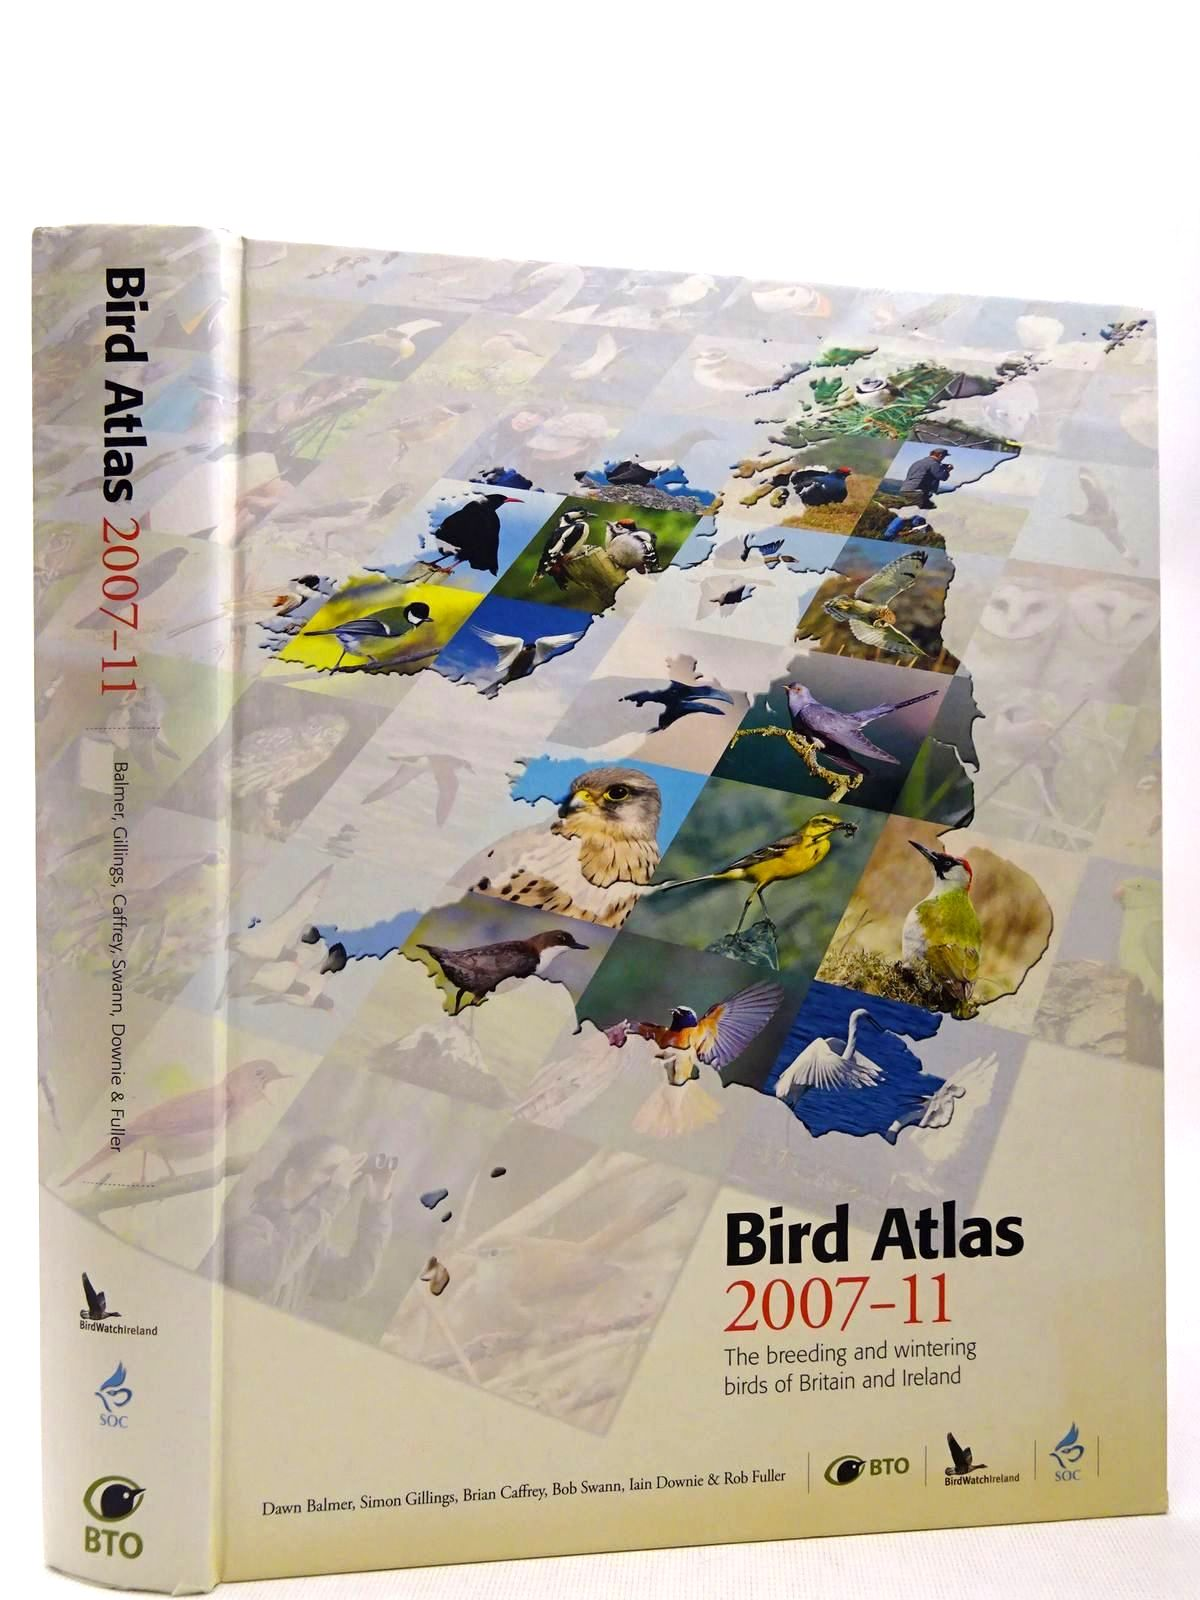 Photo of BIRD ATLAS 2007-11 THE BREEDING AND WINTERING BIRDS OF BRITAIN AND IRELAND written by Balmer, Dawn<br />Gillings, Simon<br />Caffrey, Brian<br />Swann, Bob<br />Downie, Iain<br />Fuller, Rob<br />et al, published by Bto Books (STOCK CODE: 2127946)  for sale by Stella & Rose's Books